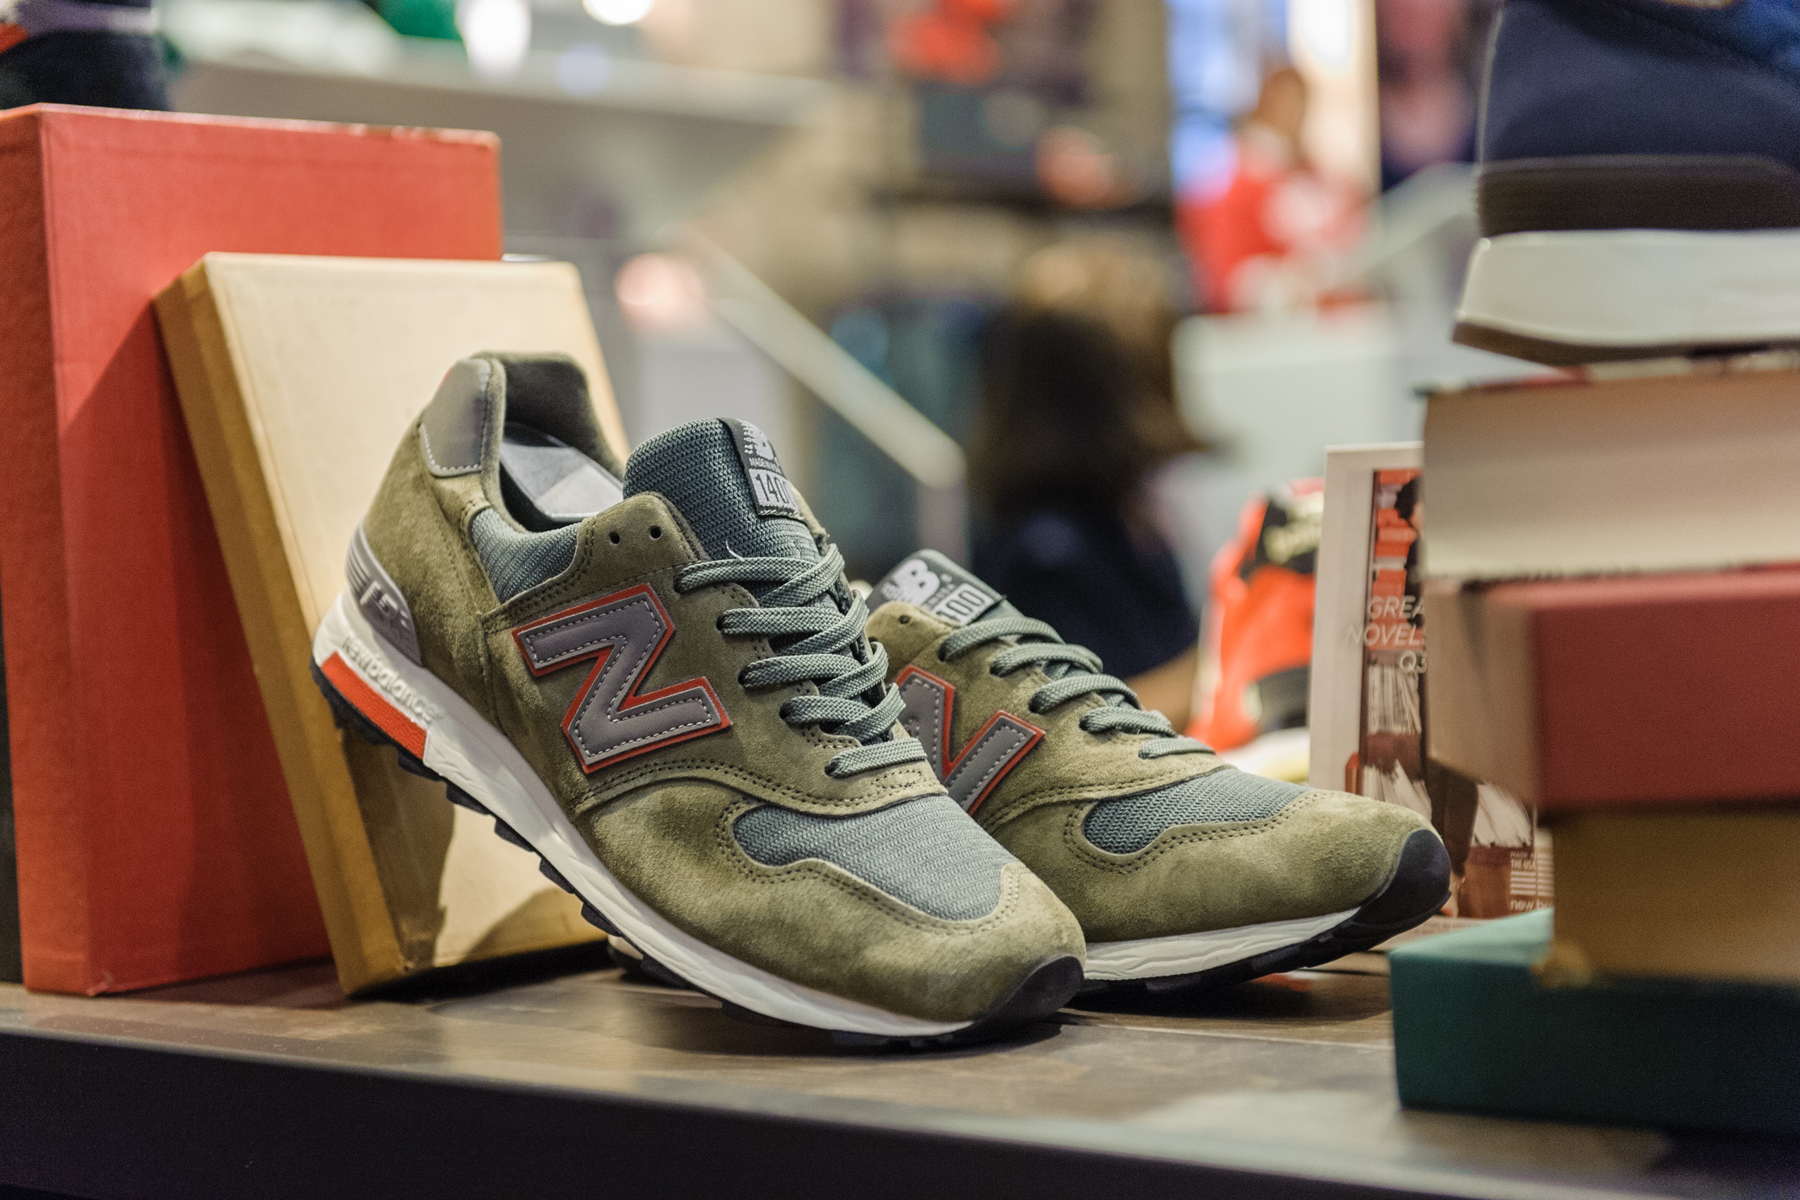 http://hypebeast.com/2014/6/new-balance-made-in-usa-authors-collection-preview-recap